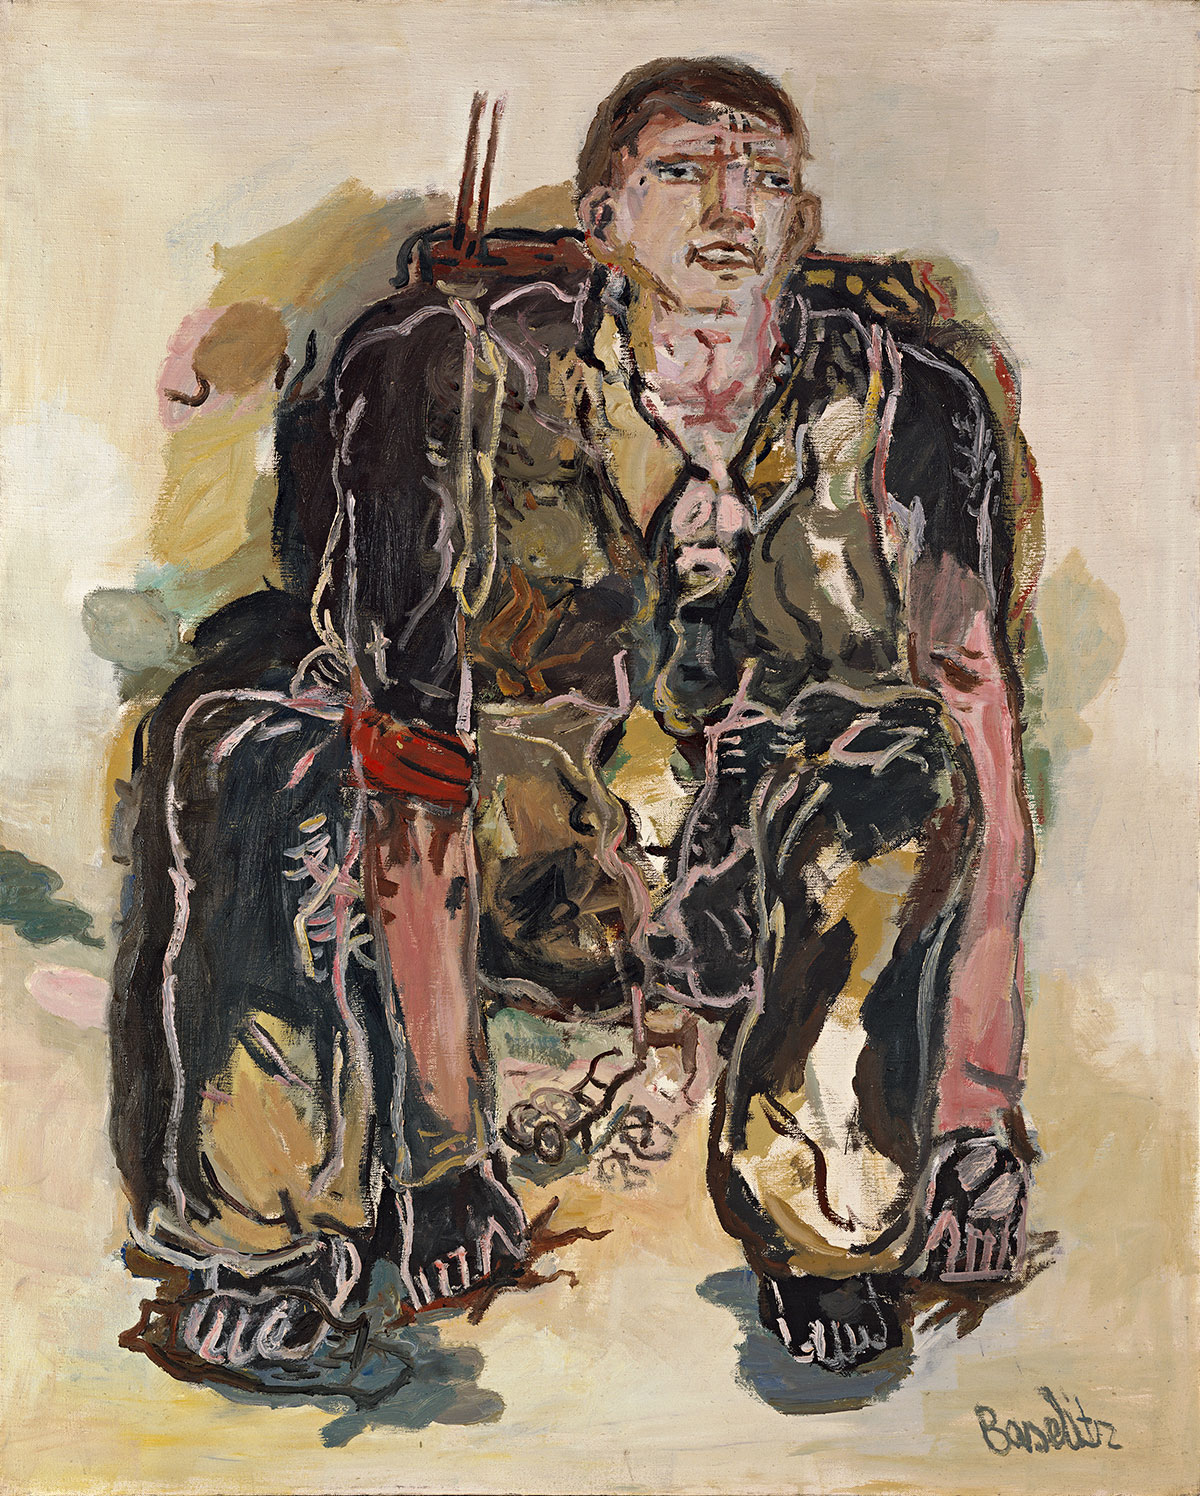 When Georg Baselitz painted his Heroes